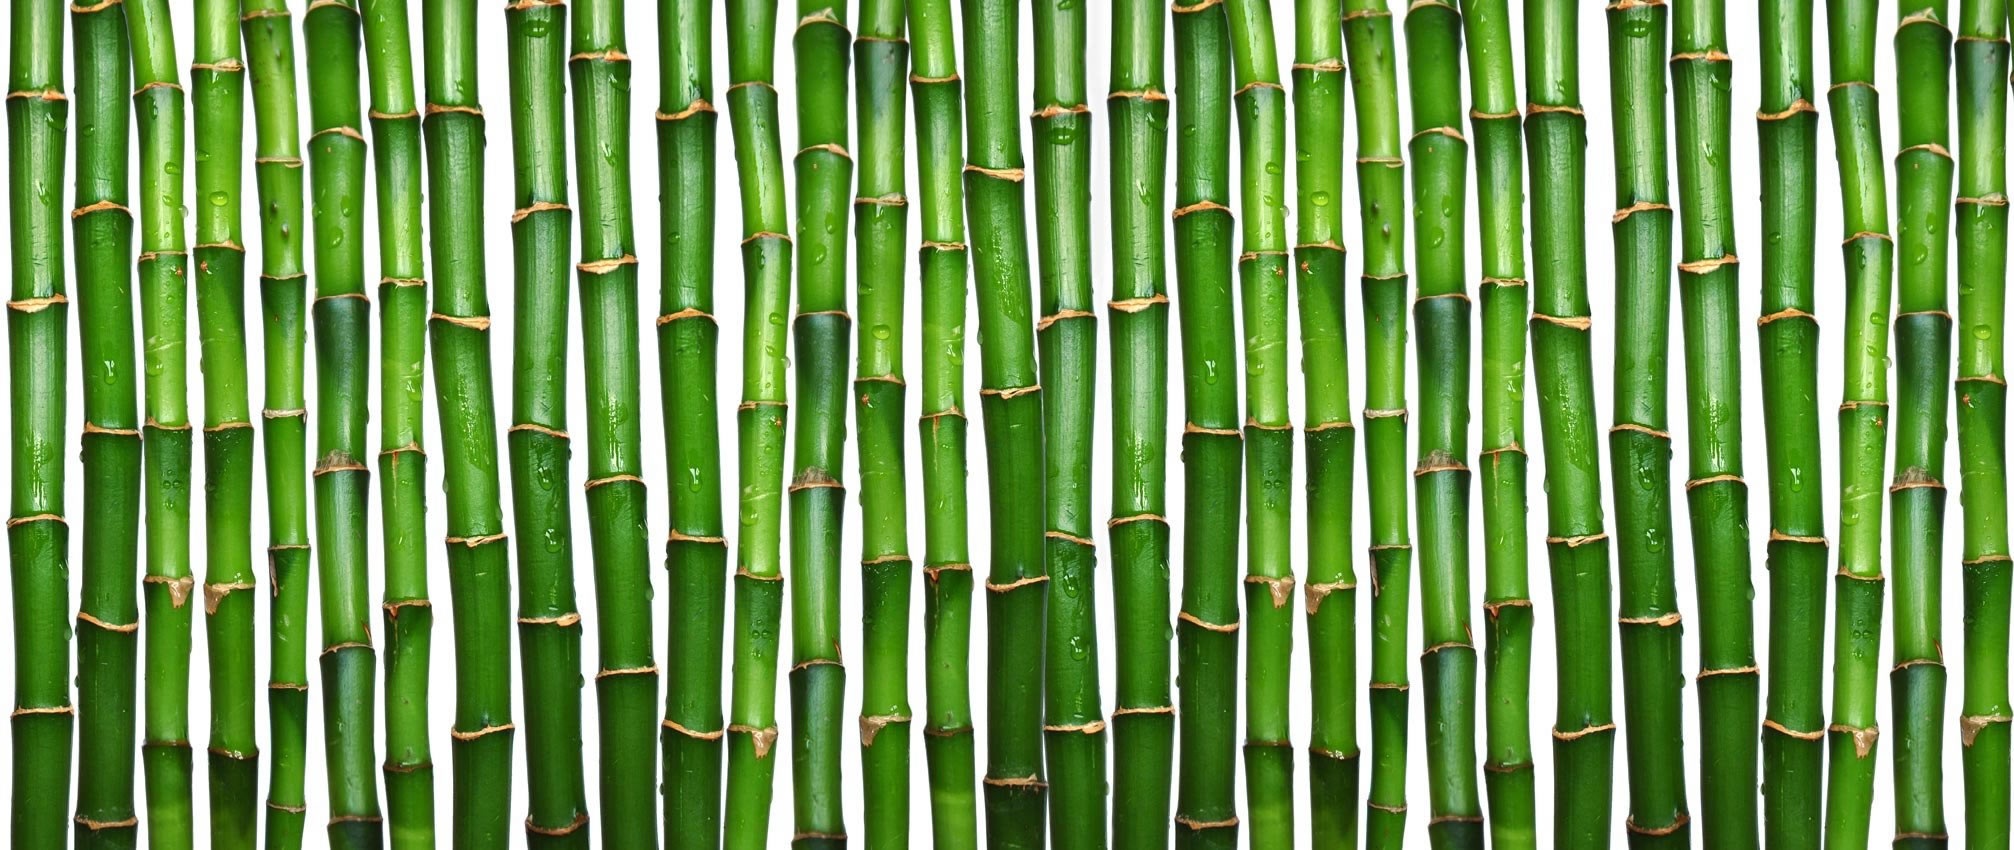 green bamboo, texture bambooа, green bamboo texture, photo, background